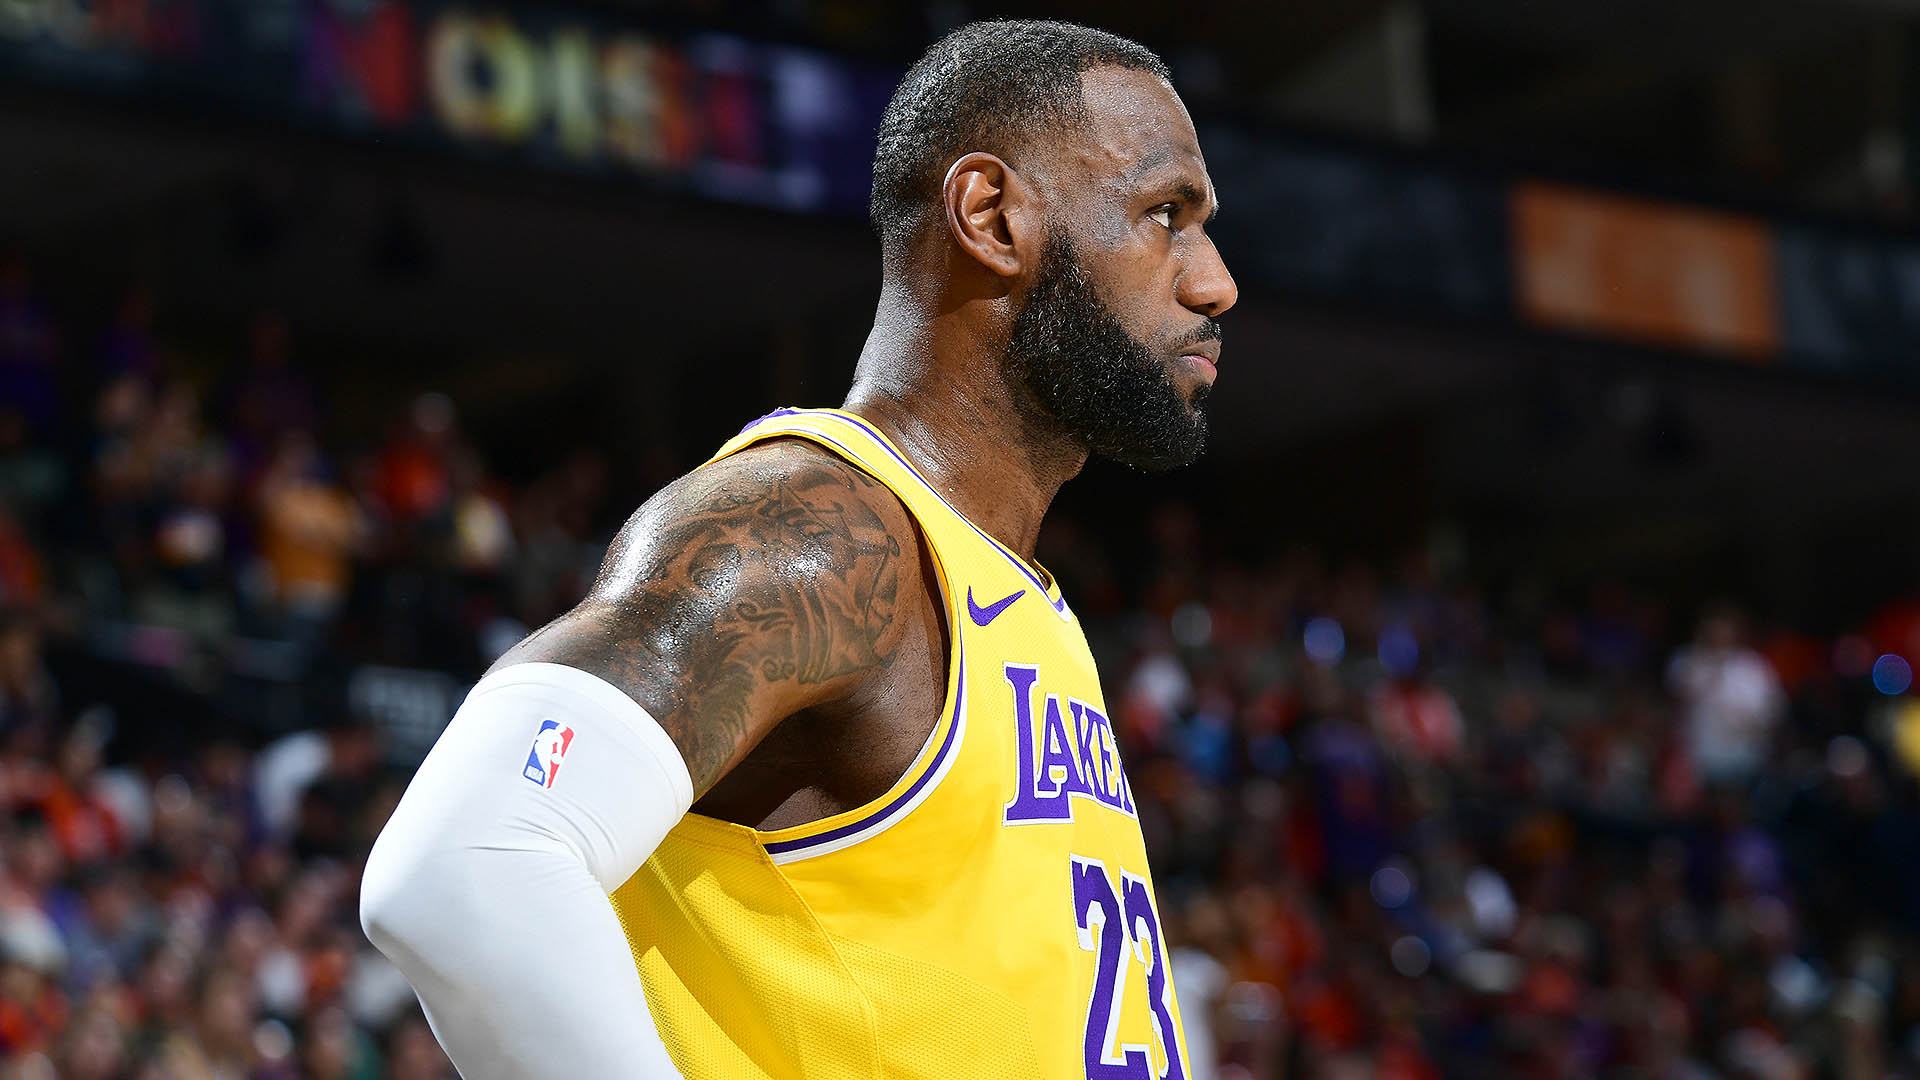 Lakers show little fight in Game 5 without Anthony Davis